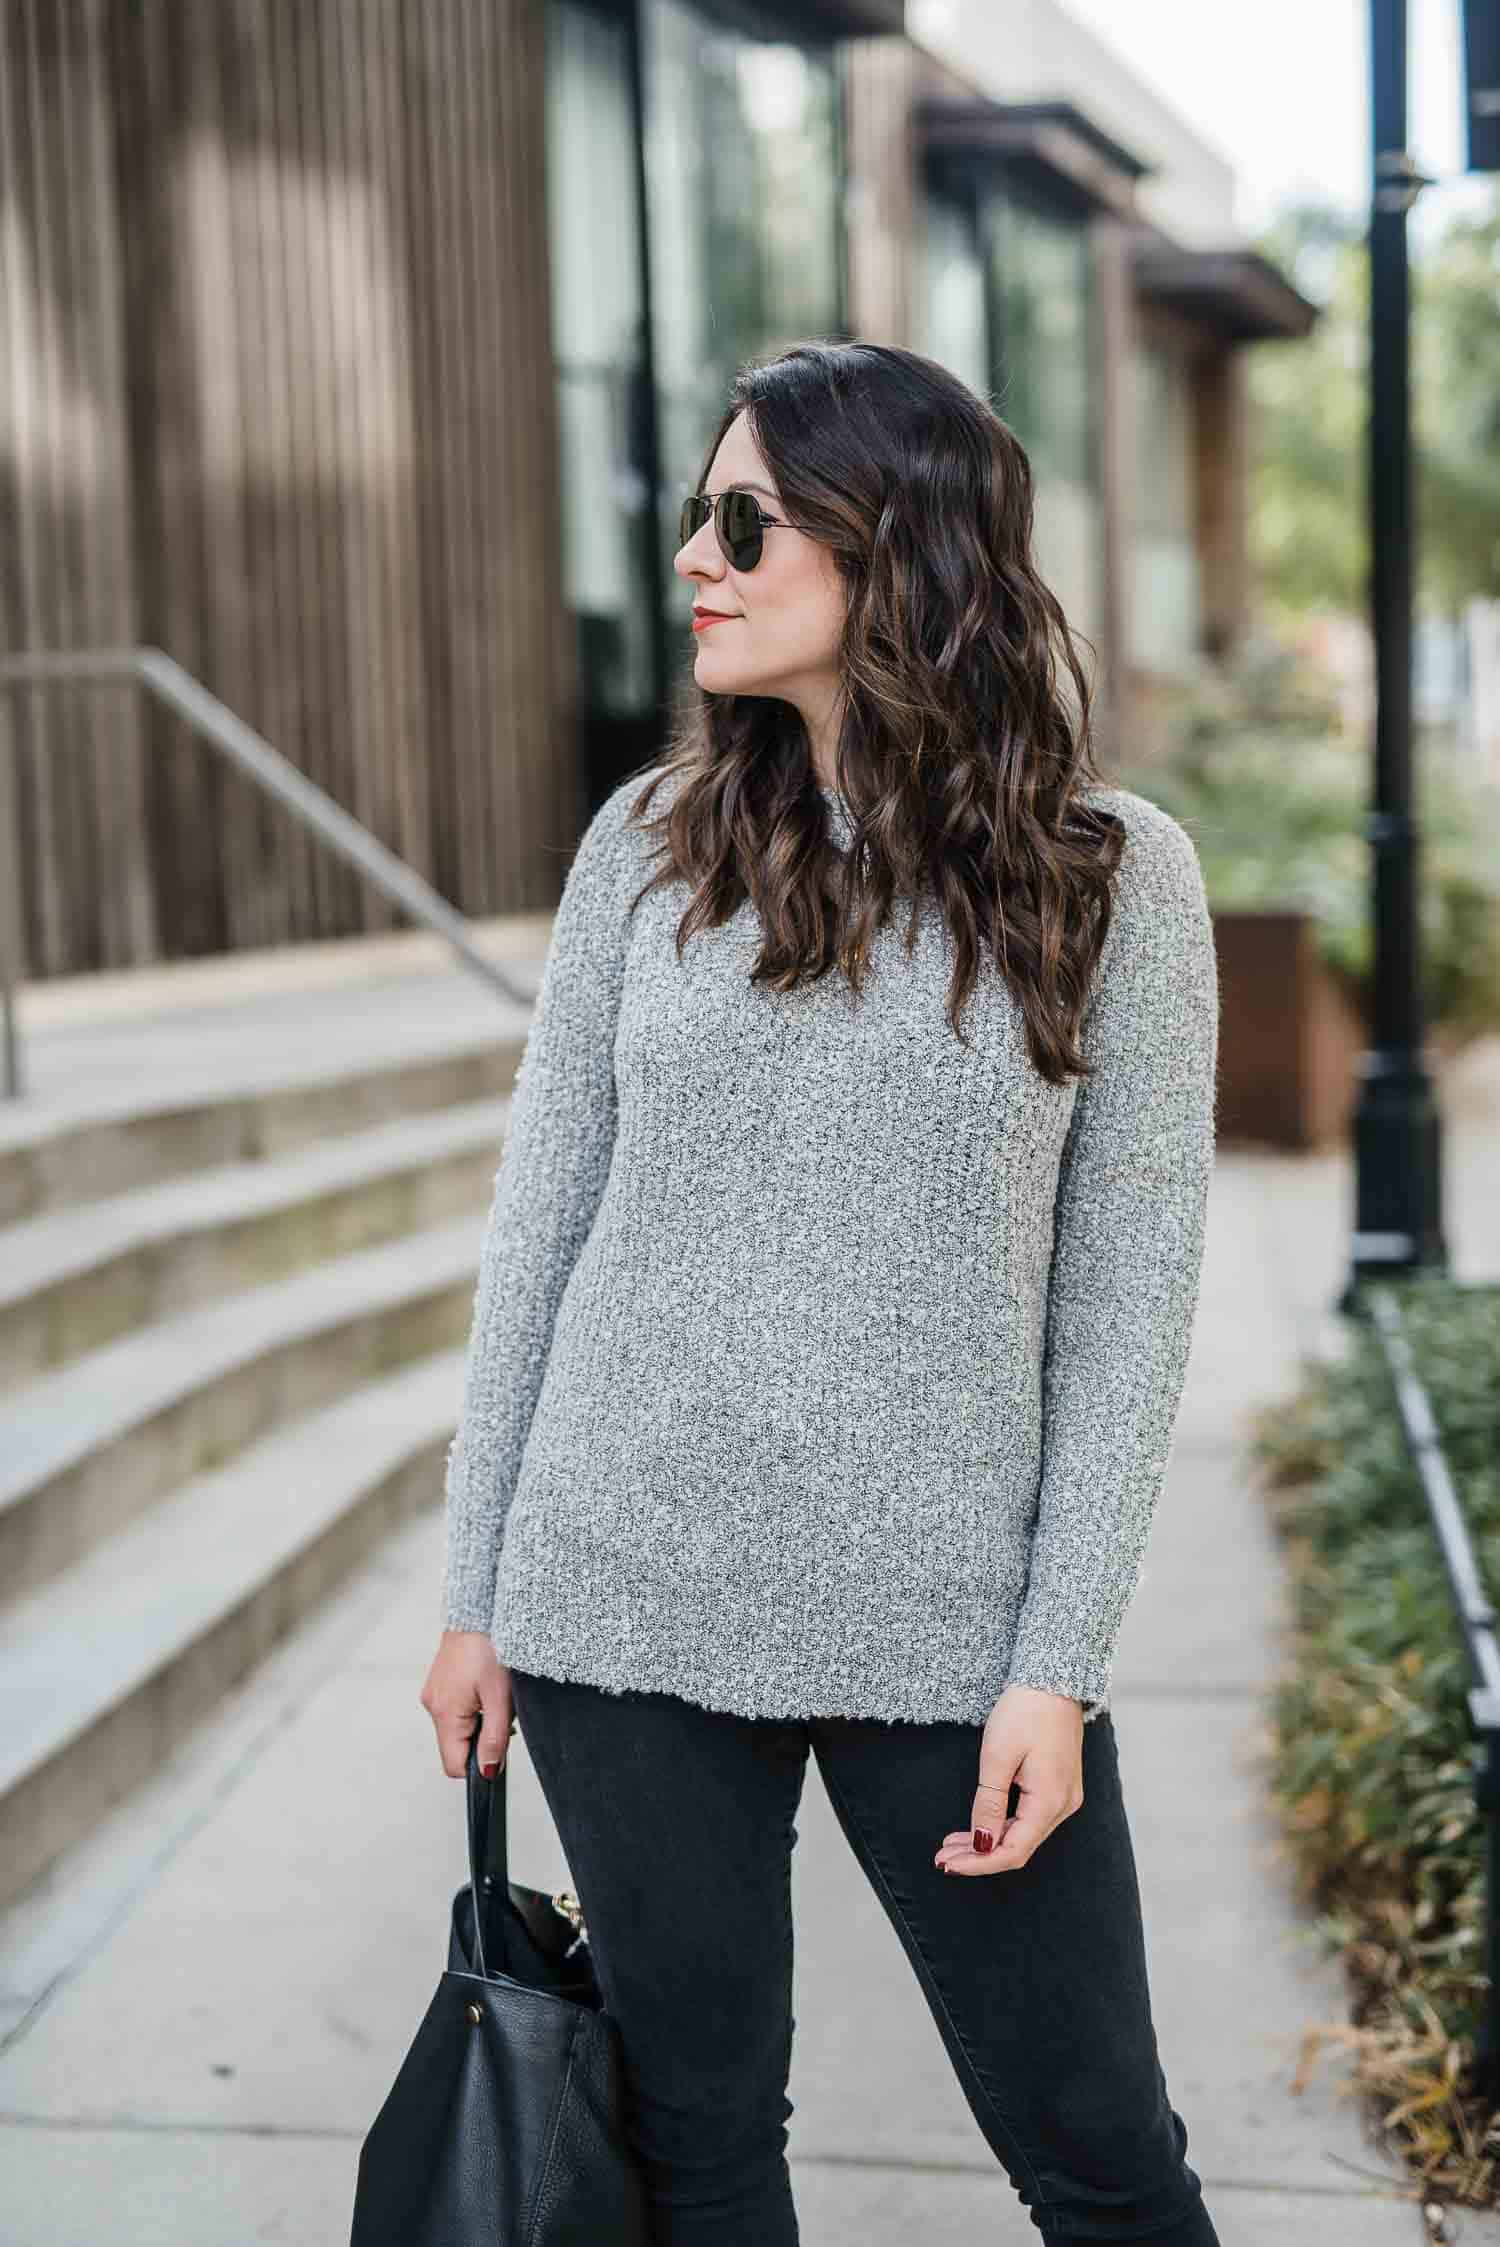 grey sweater, fall outfit ideas, black and grey outfit - My Style